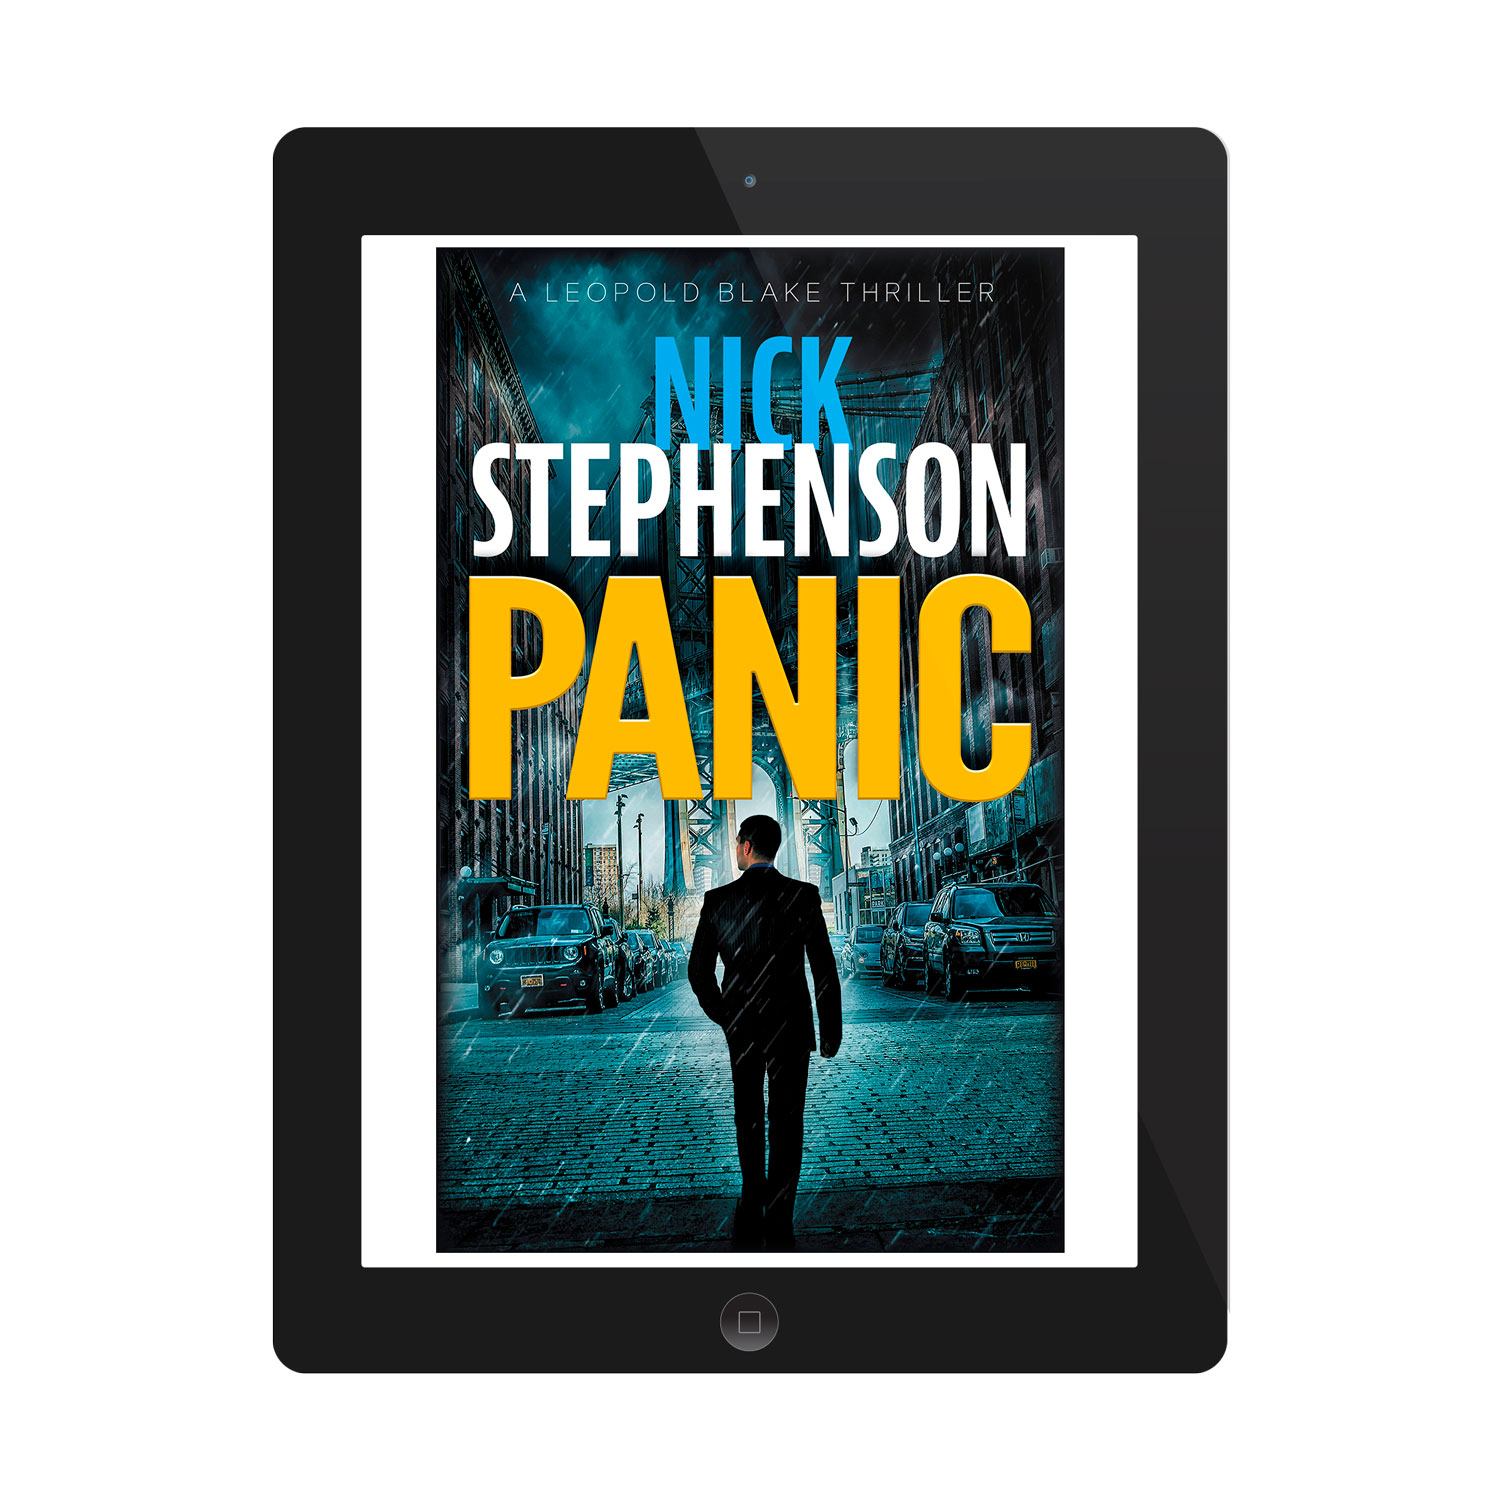 'Leopold Blake' is a terrific thriller series. The author is Nick Stephenson. The book cover designs are by Mark Thomas. To learn more about what Mark could do for your book, please visit coverness.com.